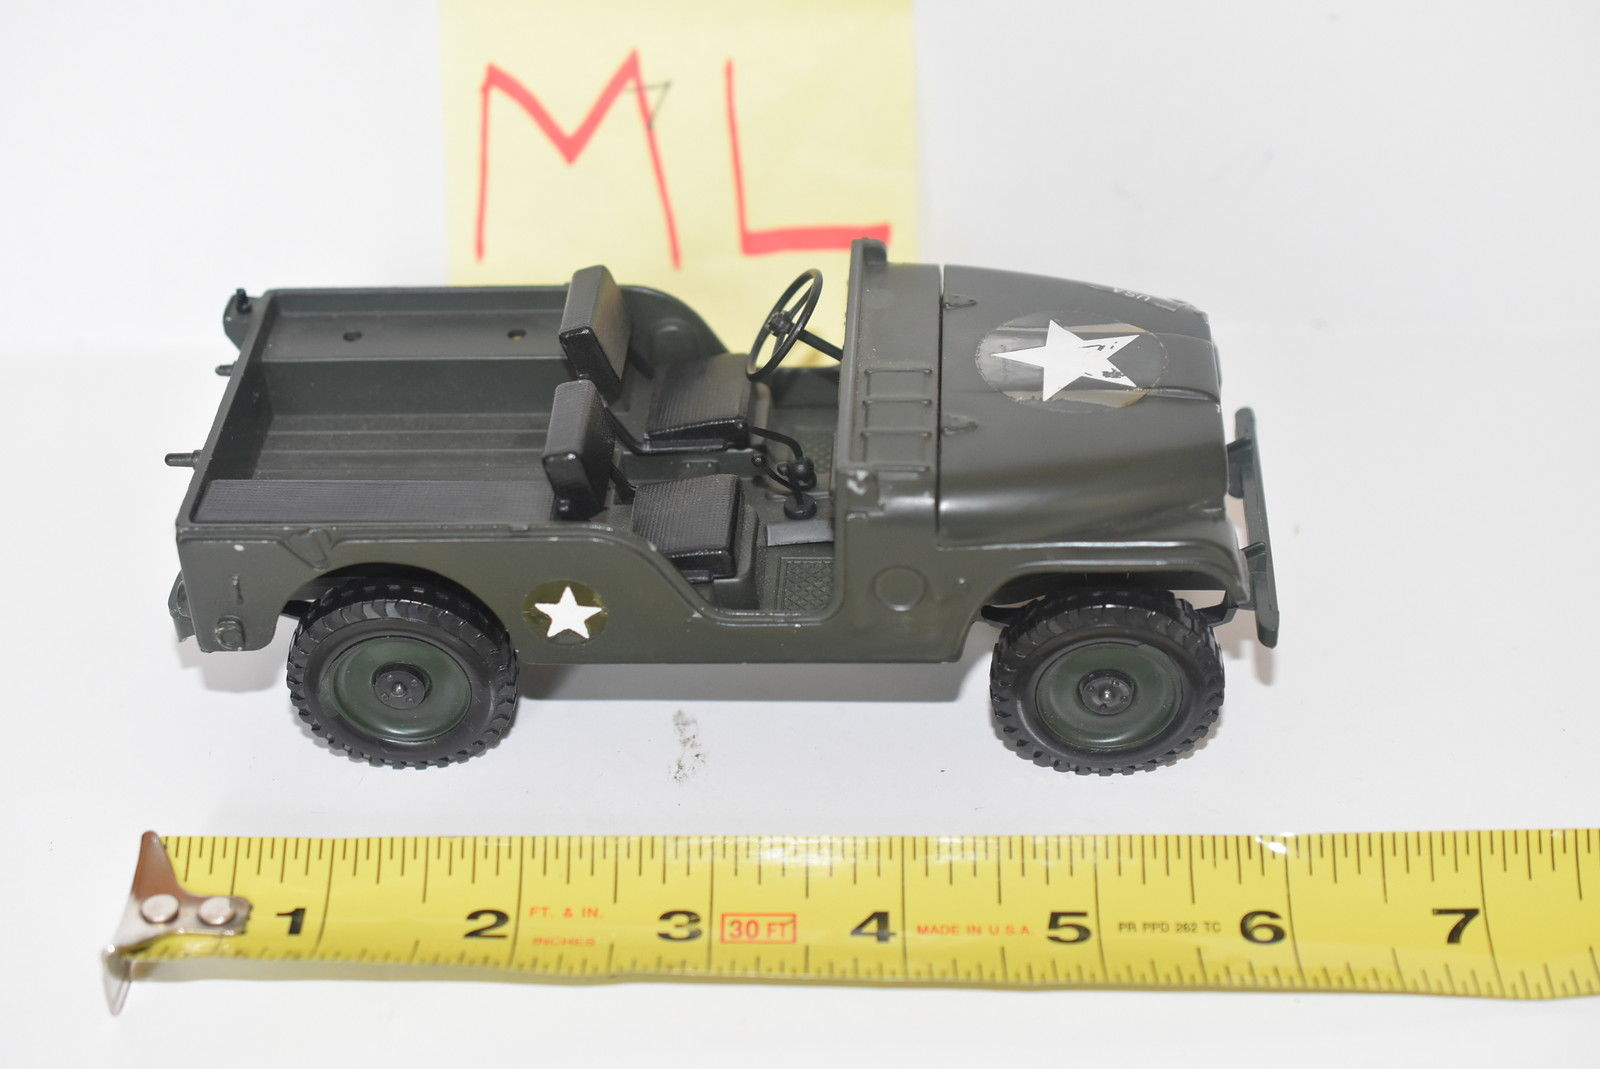 MATTEL MEBE TOYS MILITARY JEEP WILLYS MADE IN ITALY SCALE 1/25 - LOOSE E+